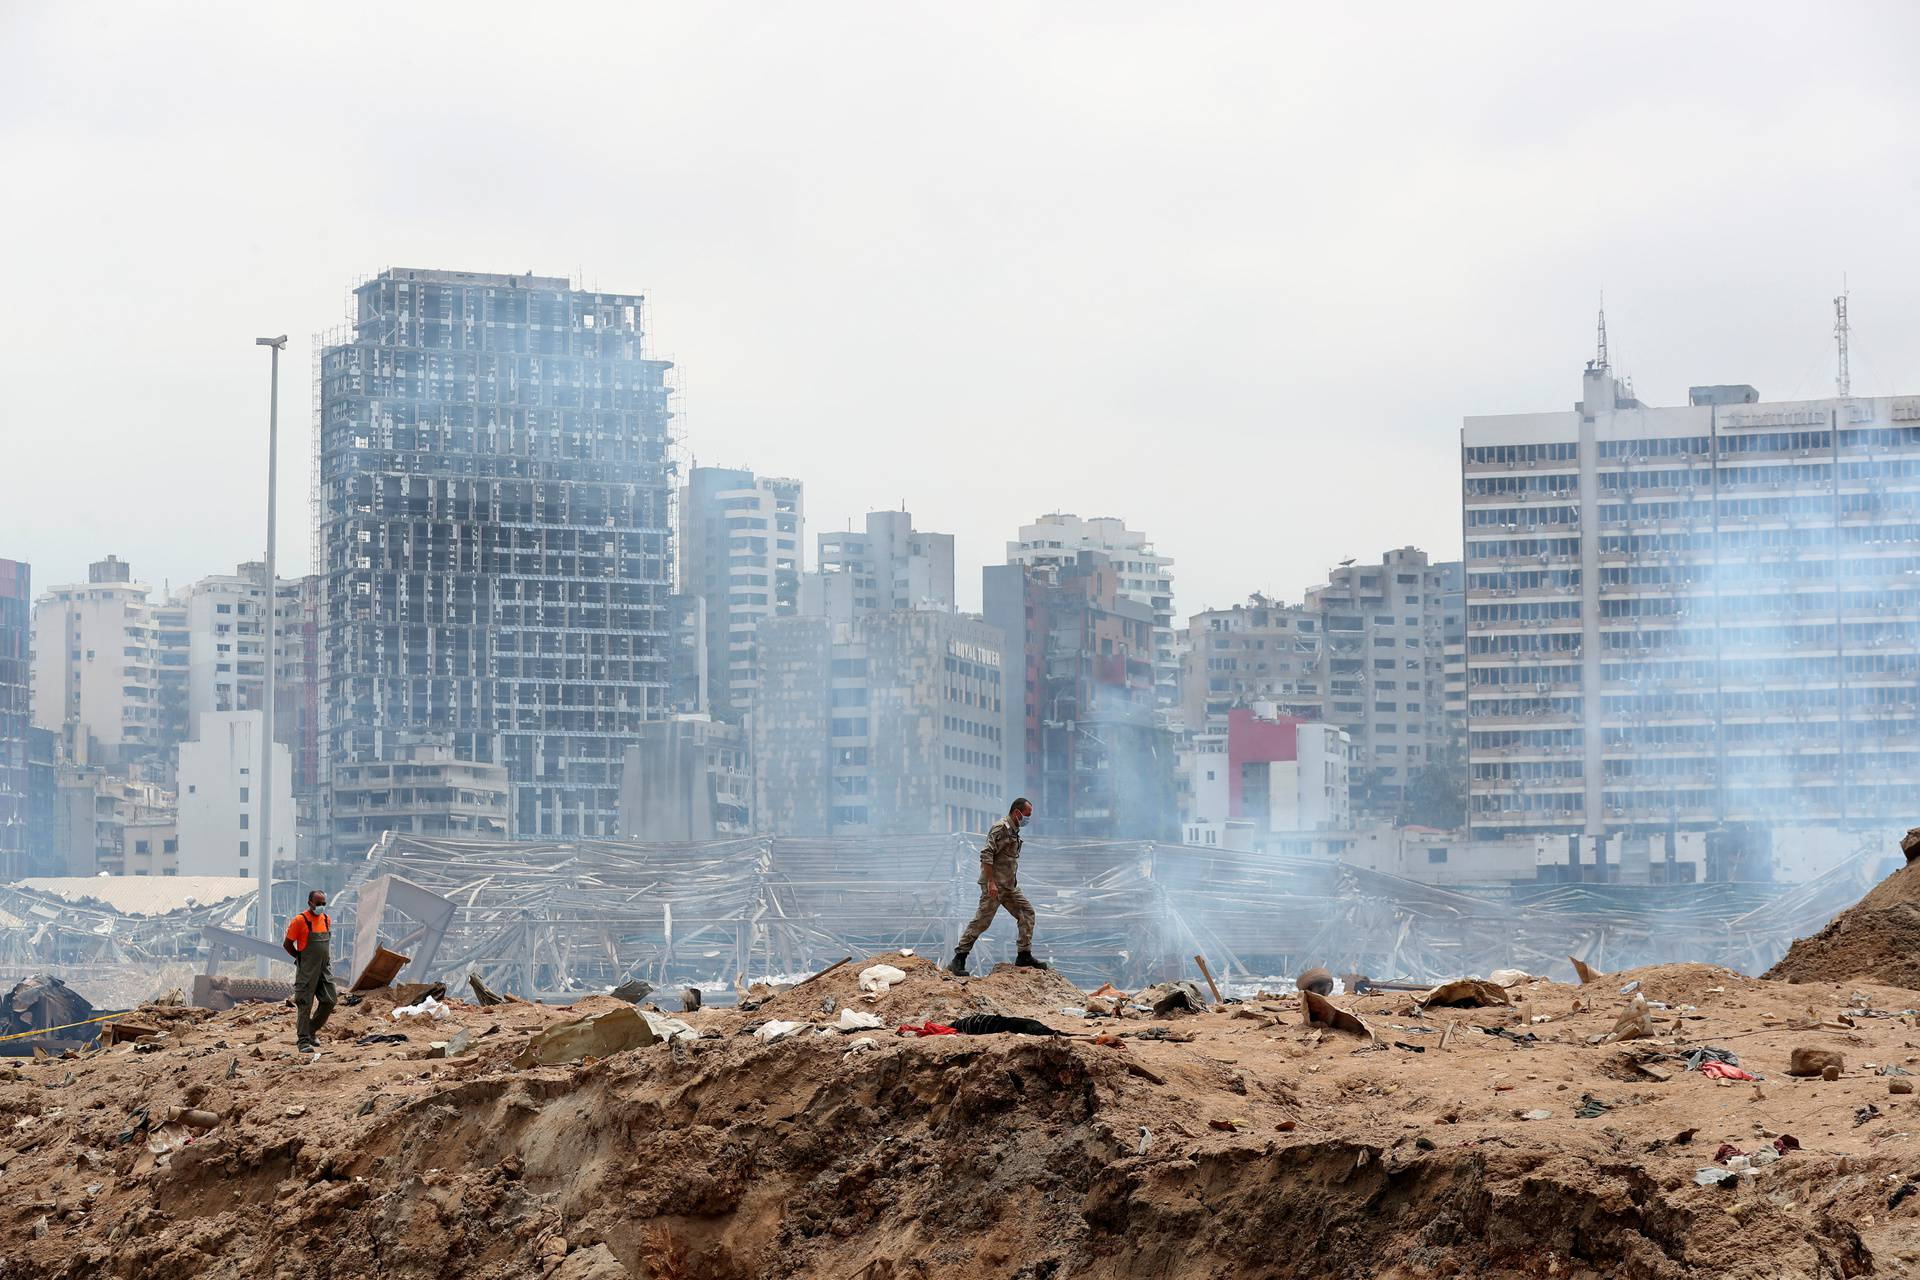 A soldier walks at the devastated site of the explosion at the port of Beirut